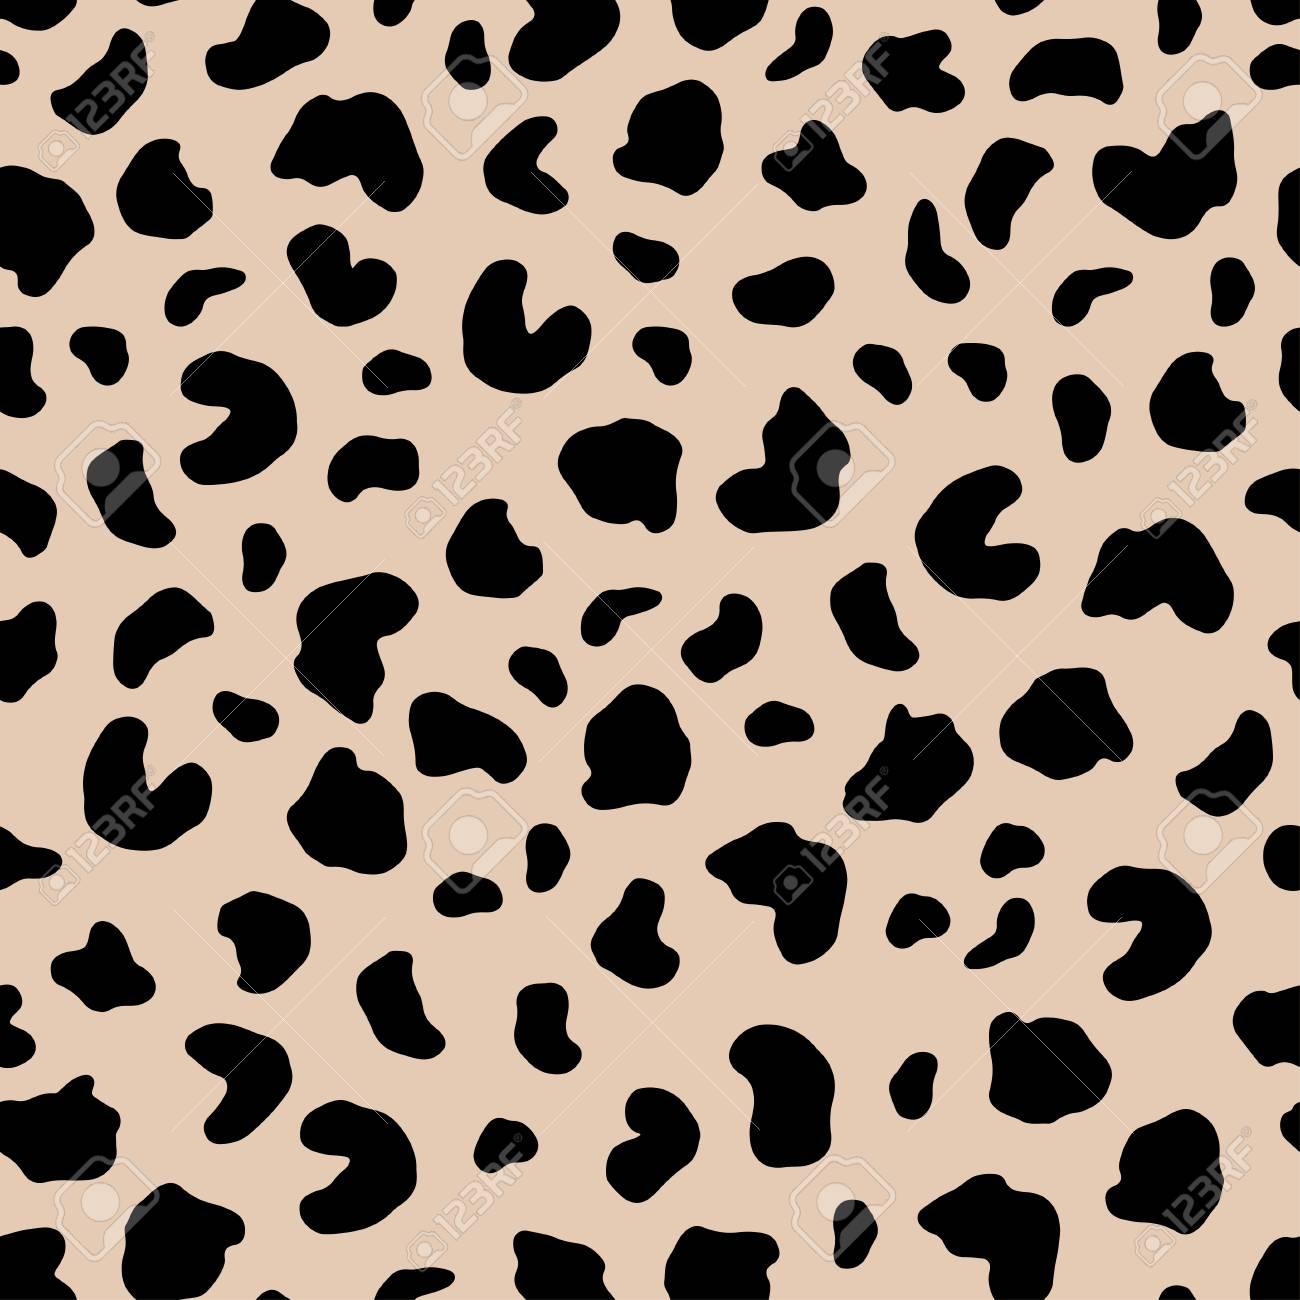 Seamless Abstract Pattern Art Texture With Hand Painted Crossing